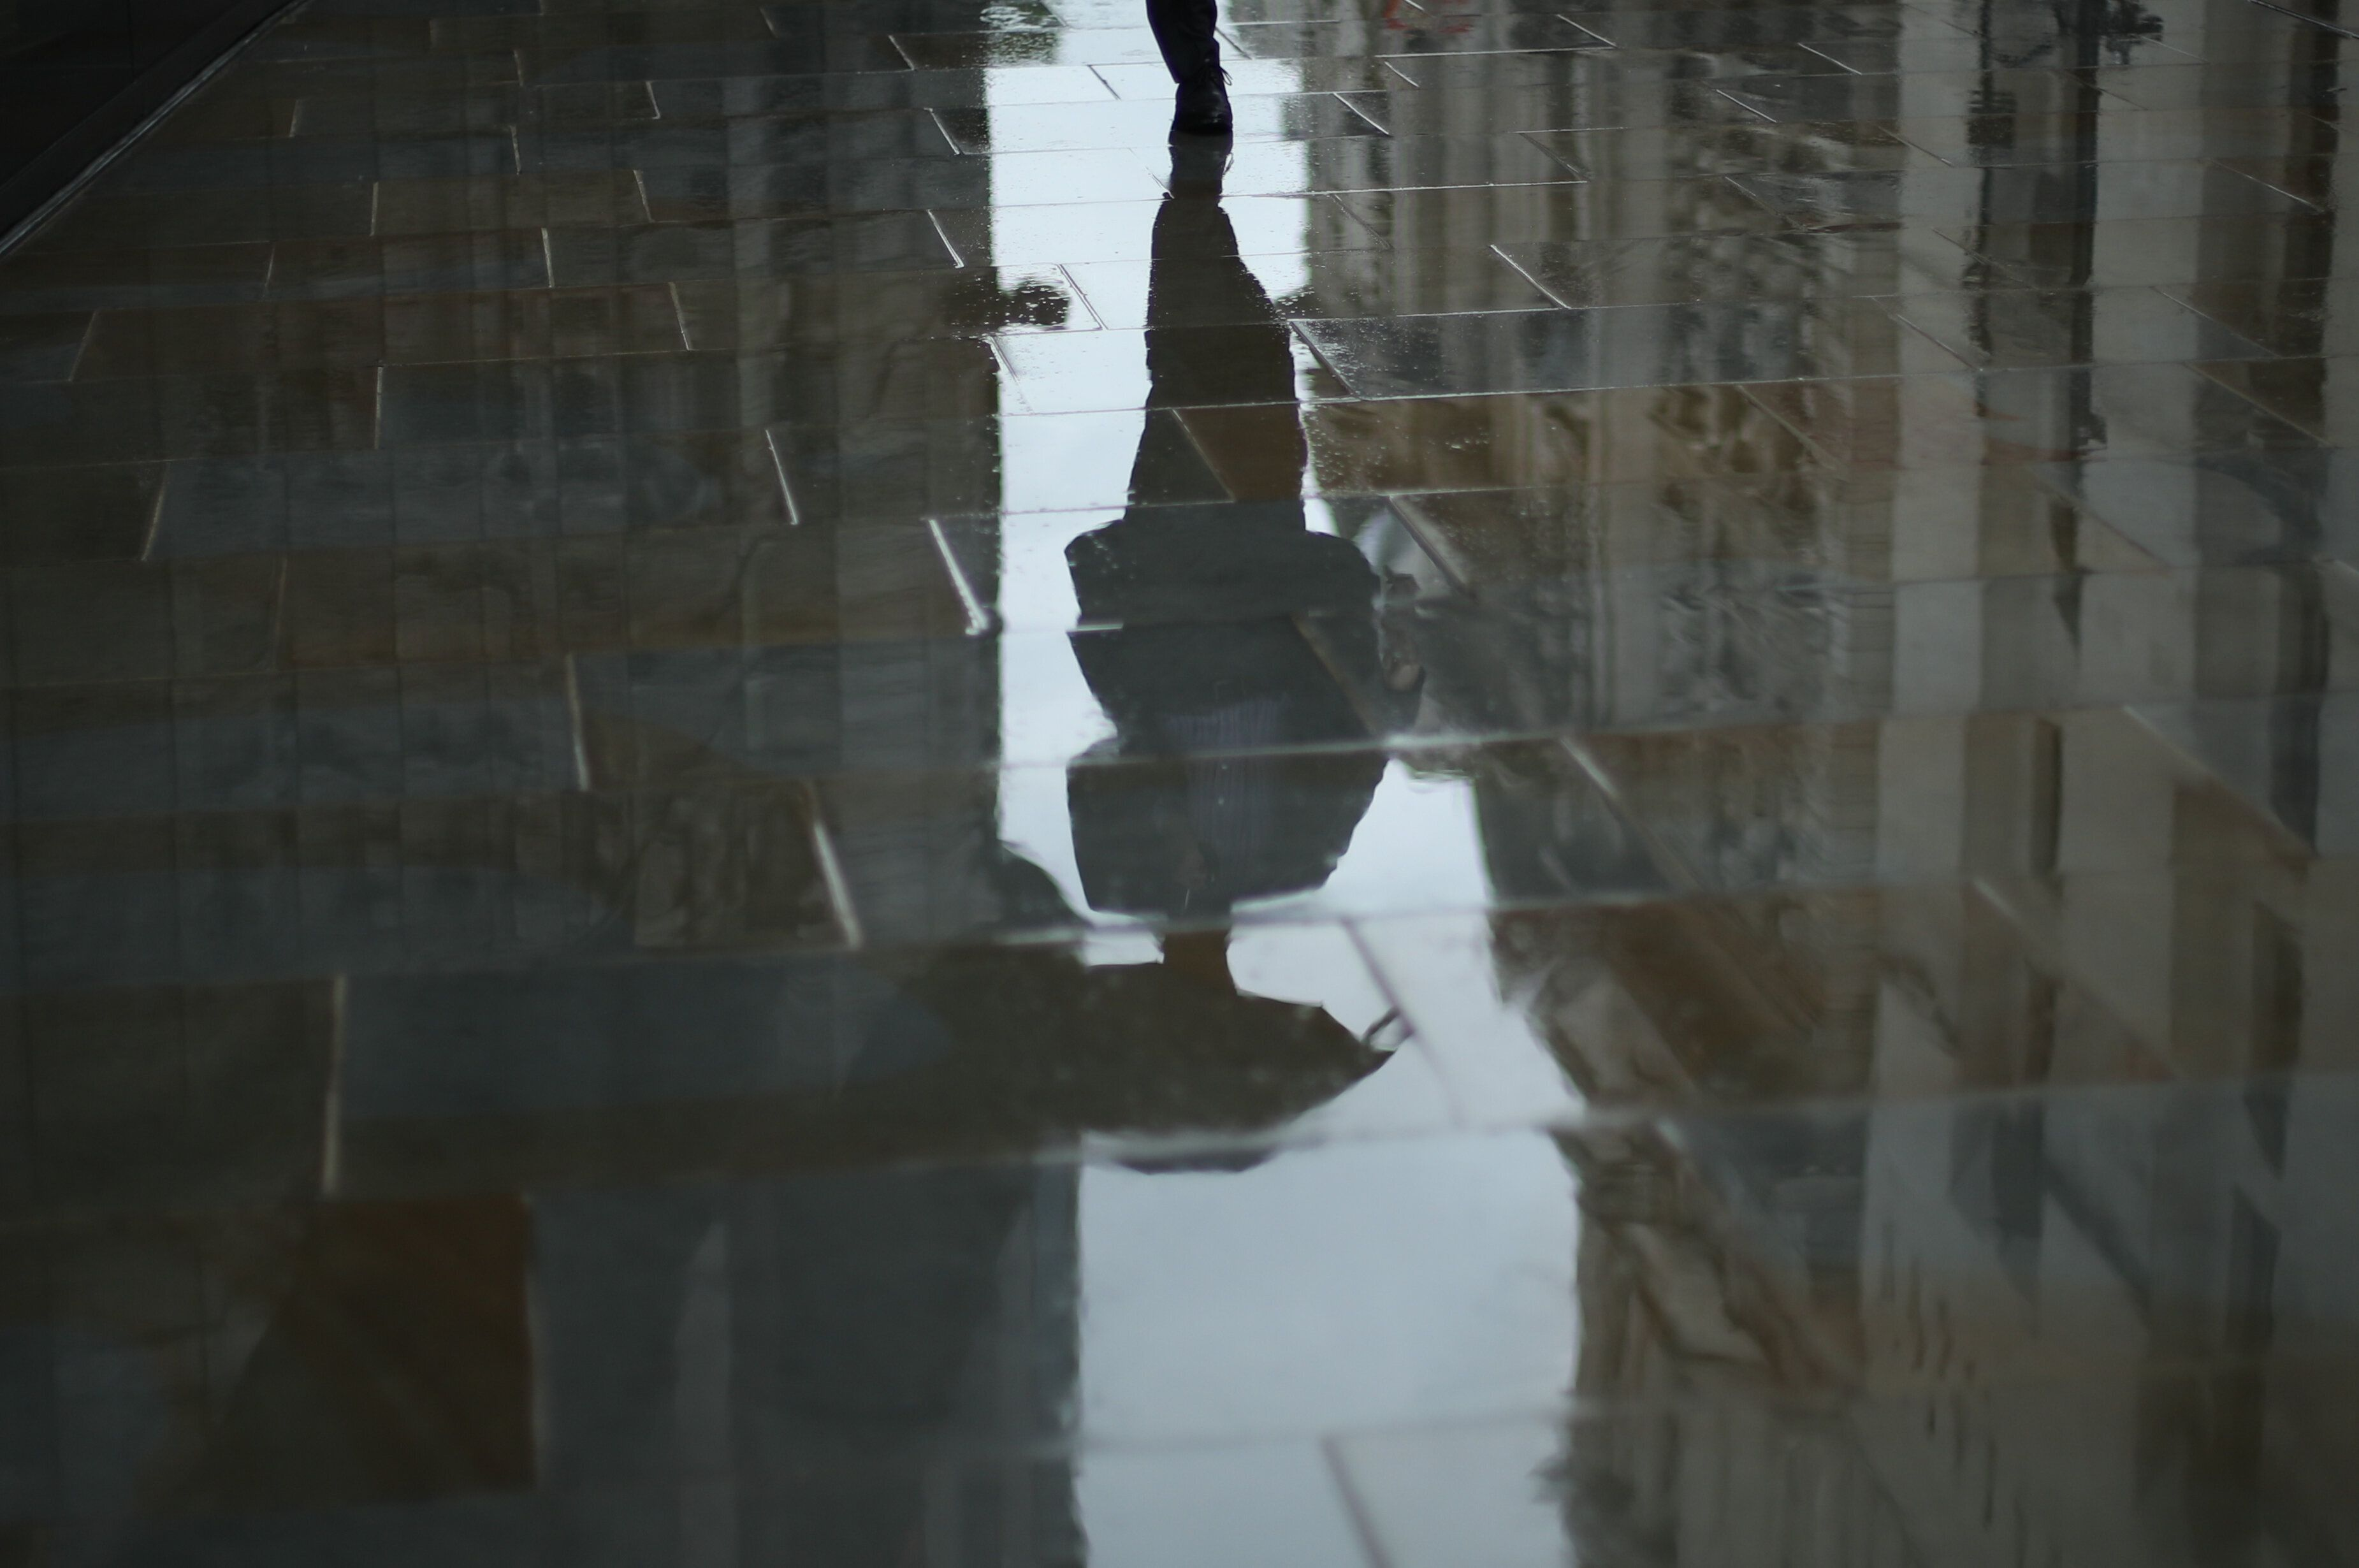 A man with an umbrella is reflected in the wet pavement outside the Old Bailey, London following a rain shower (Picture: PA)